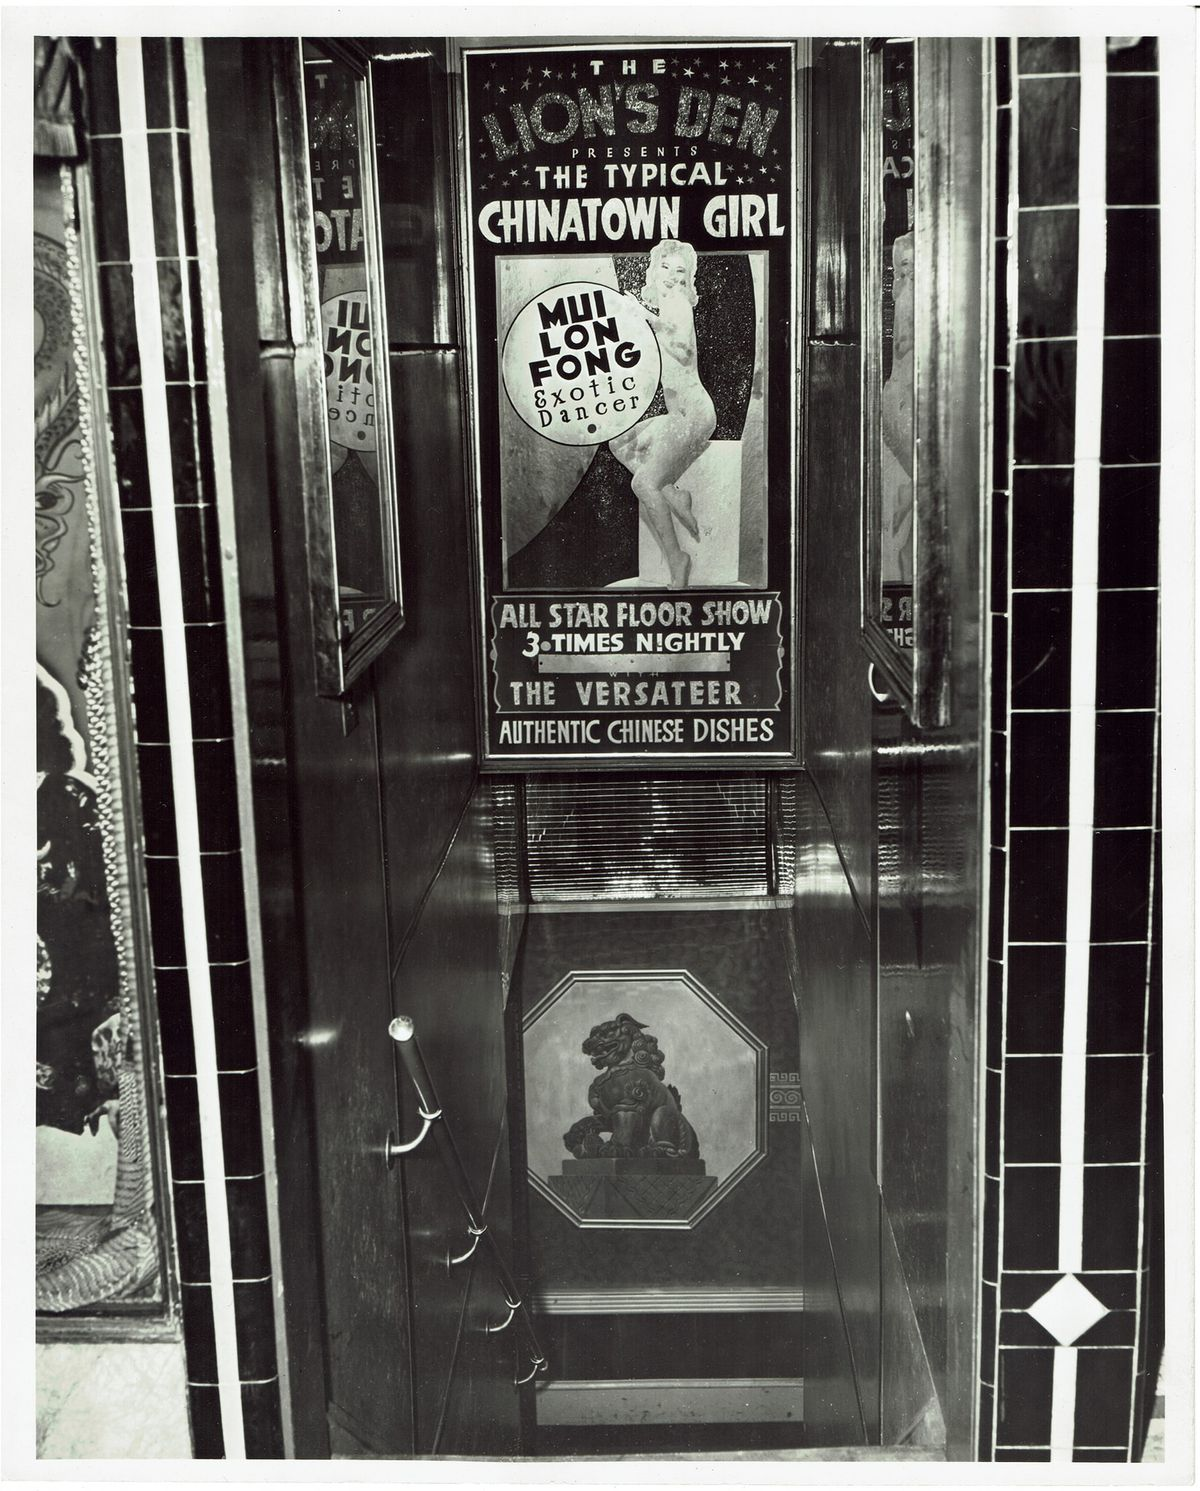 """Black and white close-up of the poster advertising a floor show by an exotic dancer named Mui Lon Fong, """"the Typical Chinatown Girl."""""""